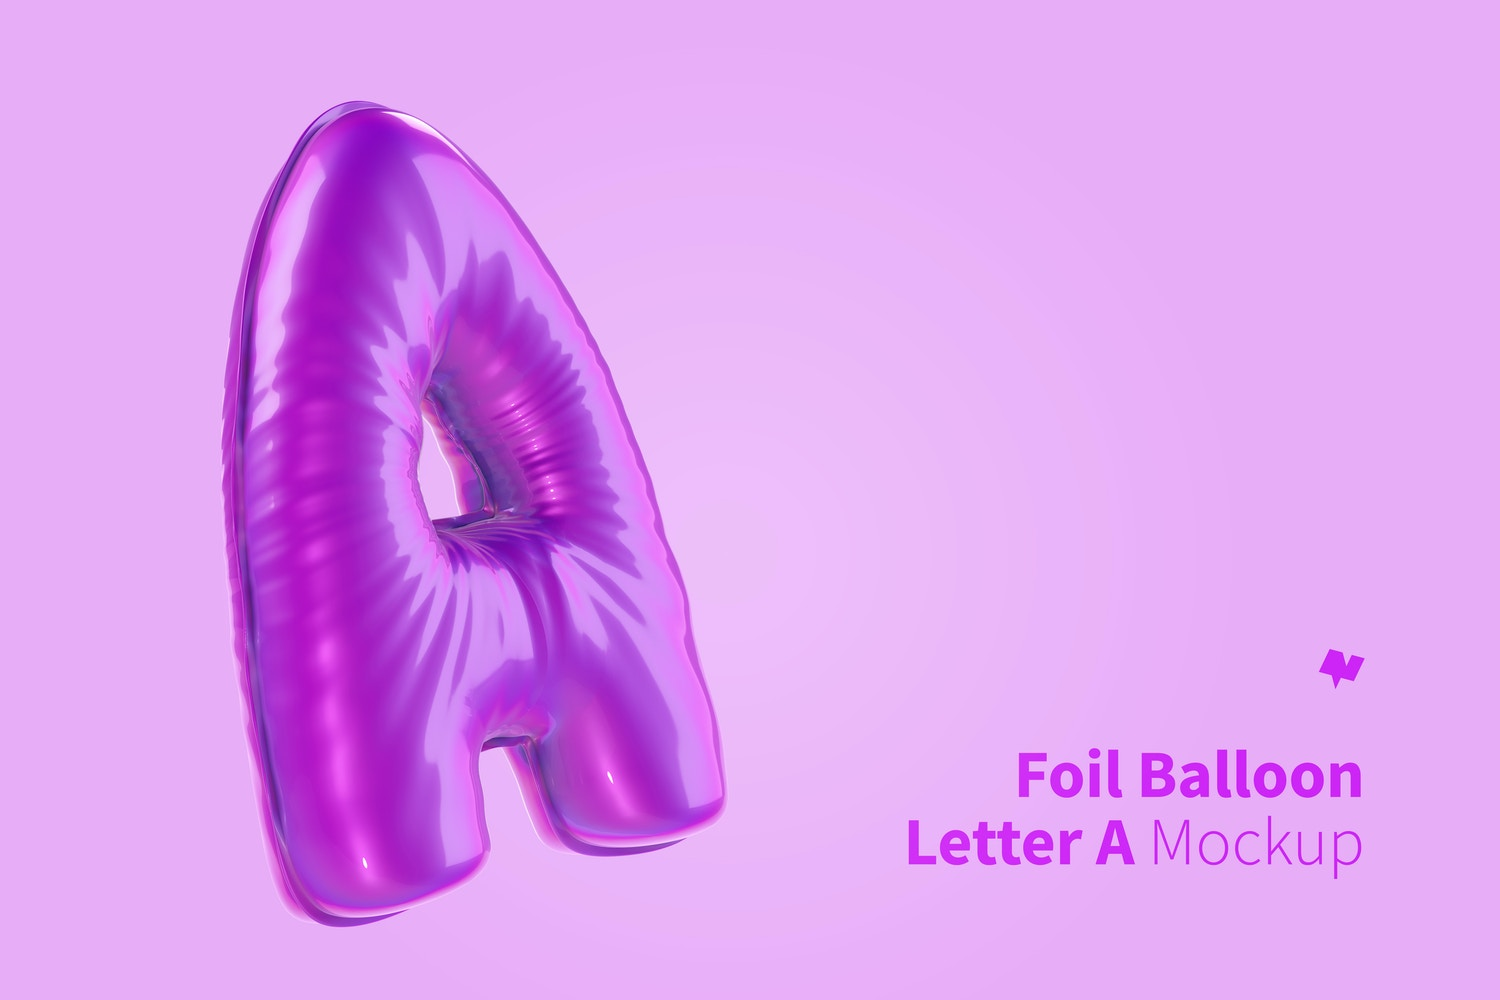 Use any color for the balloon without losing its metallic effect.